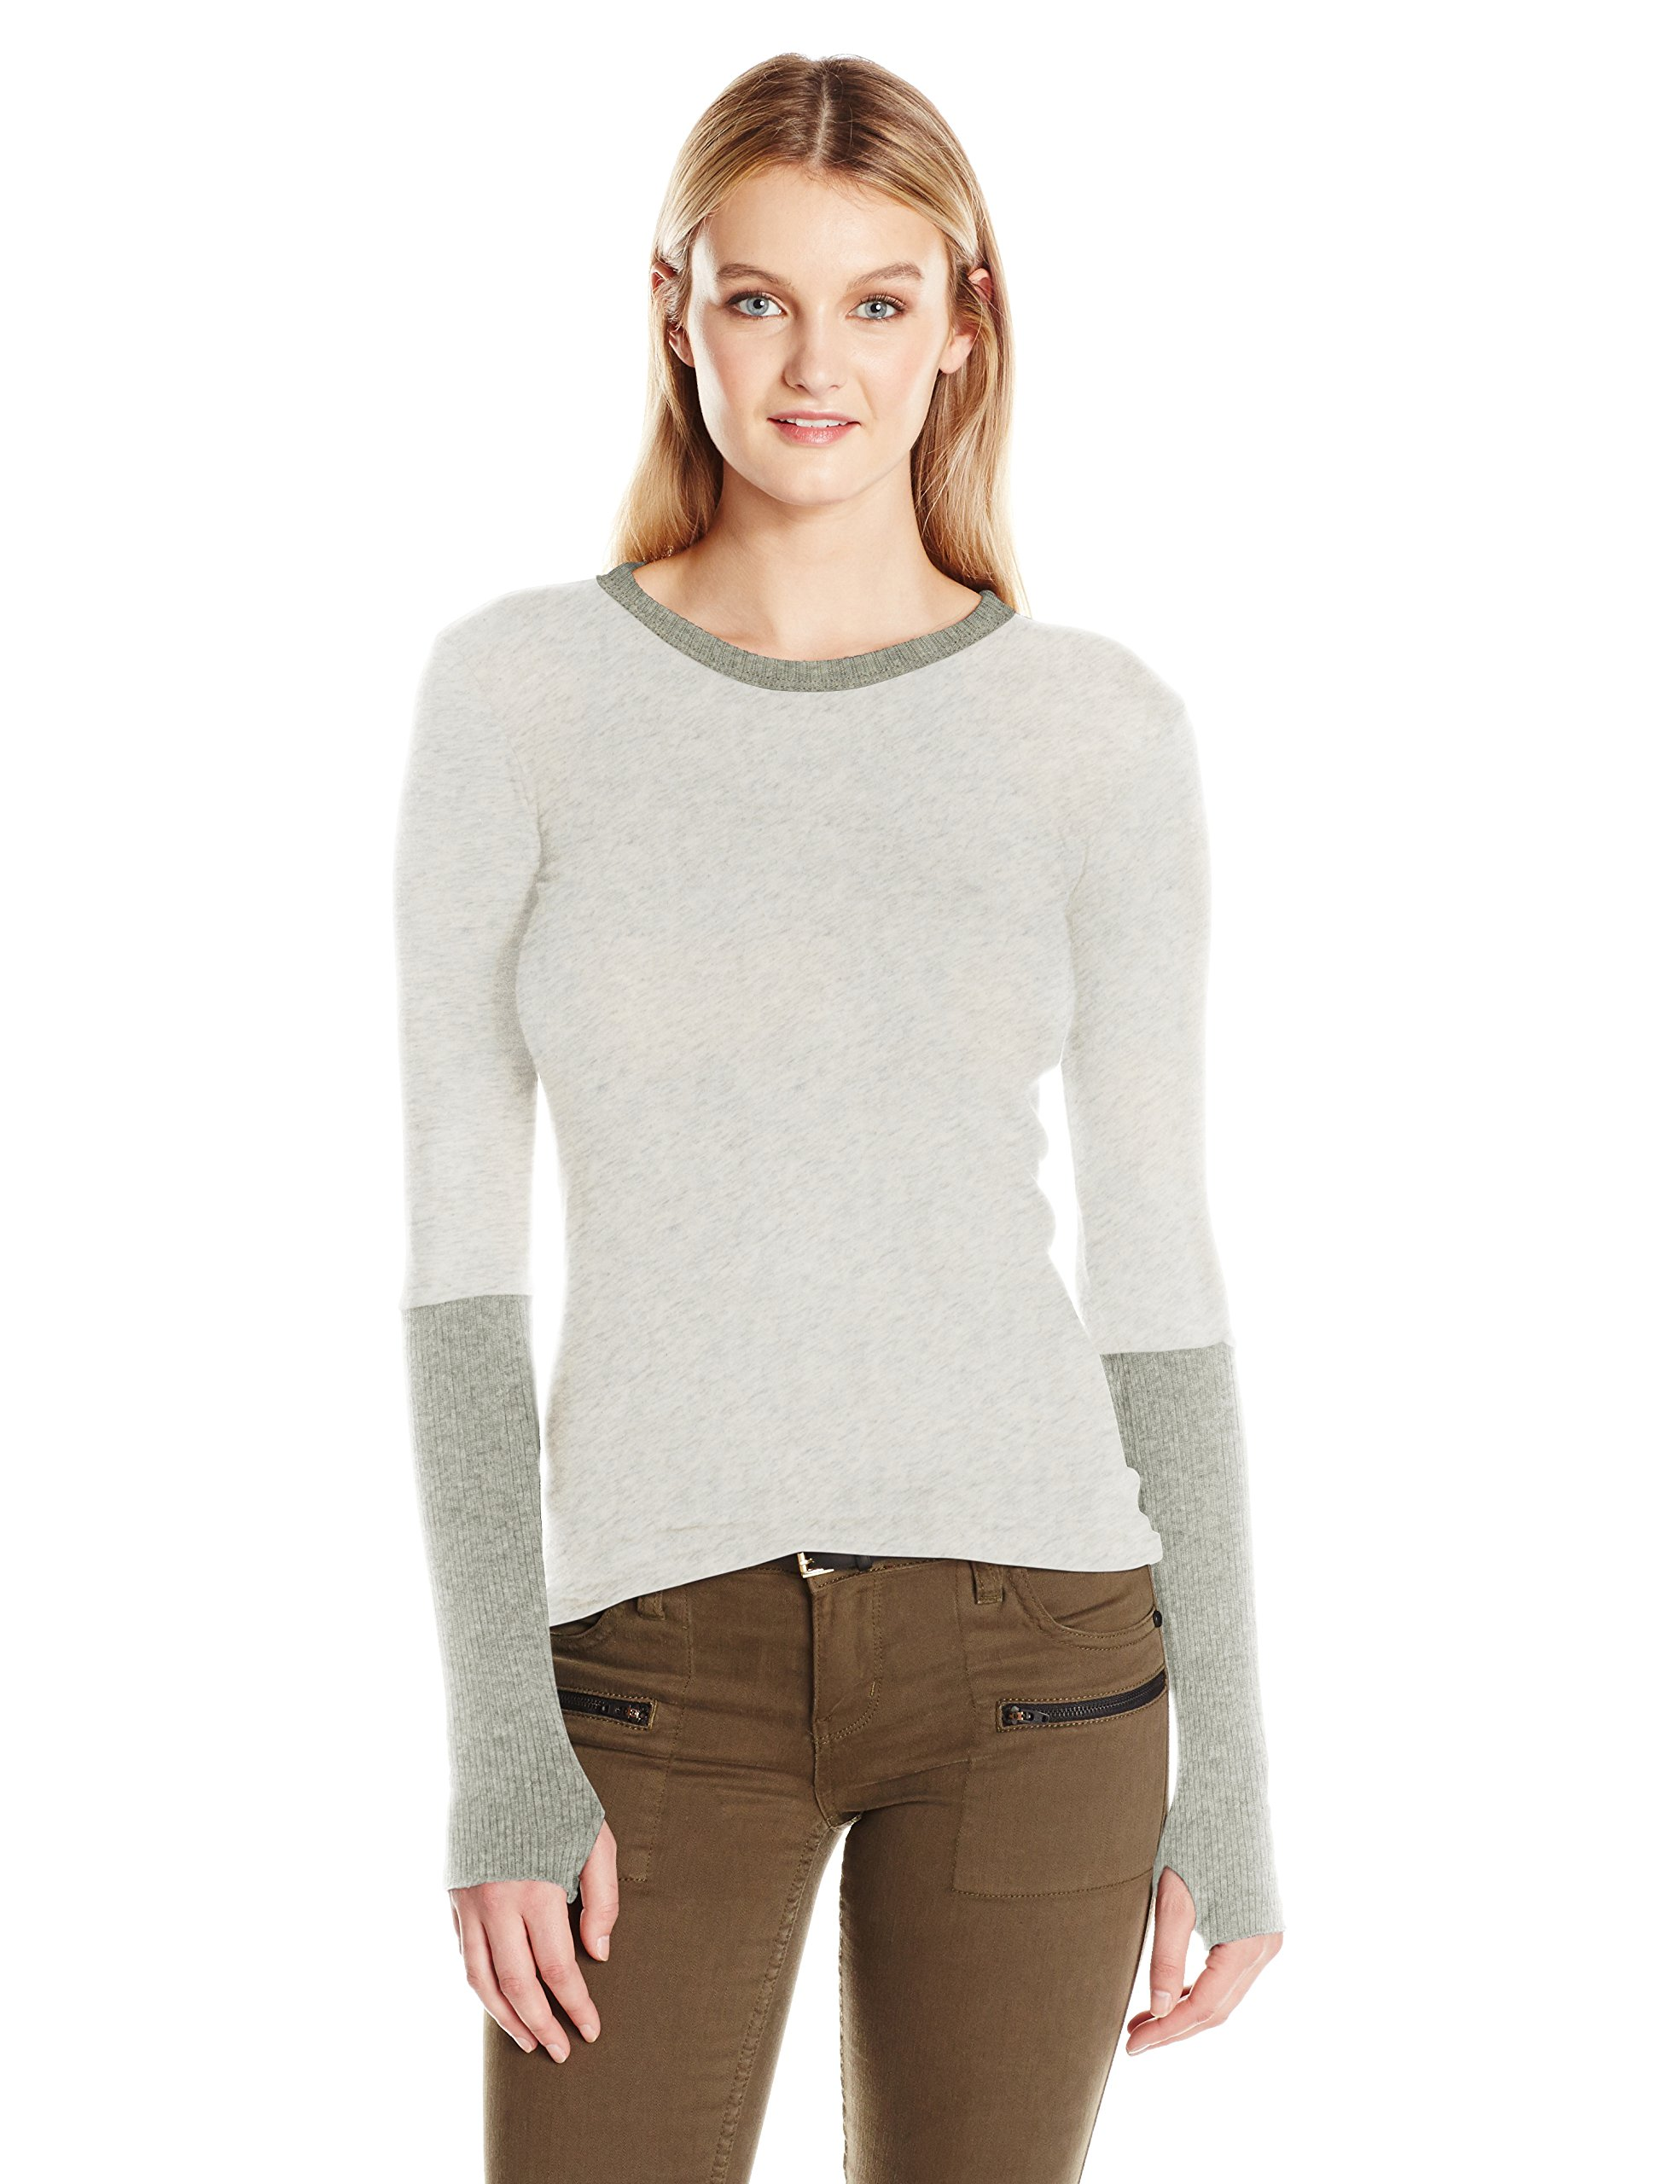 Enza Costa Women's Cashmere Long Sleeve Cuffed Crew with Thumbhole, Ash, L